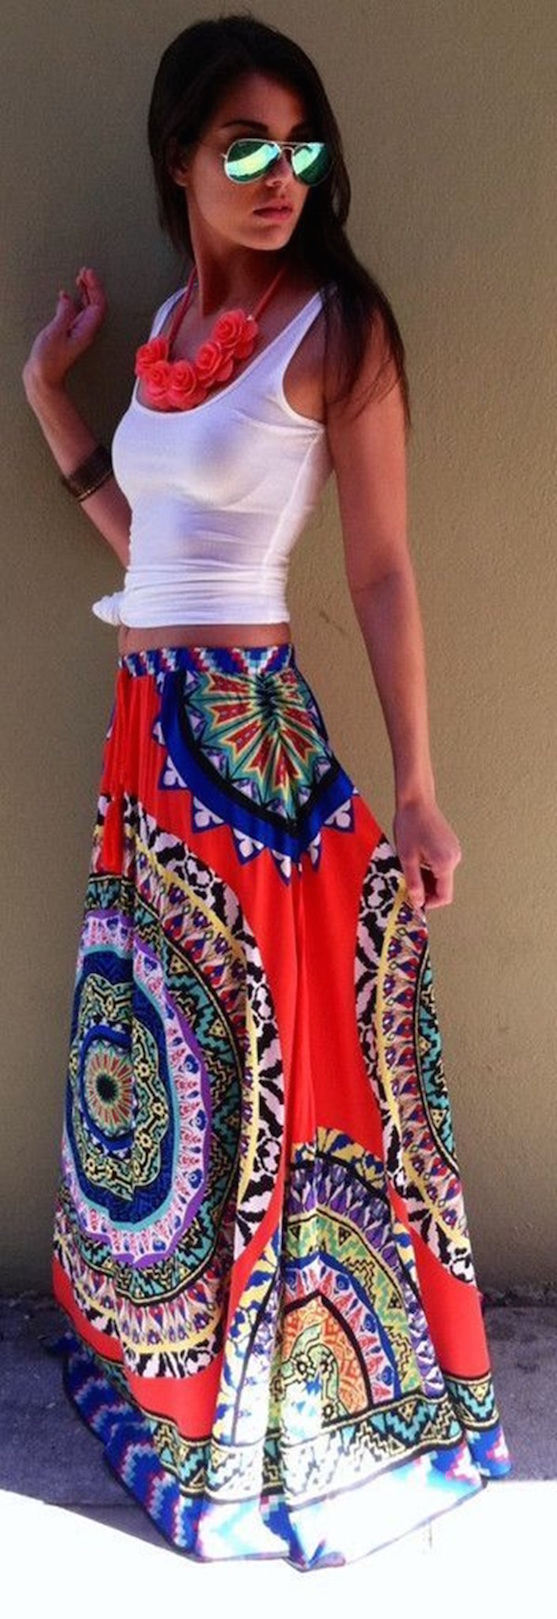 Printed-Fashion-Outfits-to-Make-Your-Friends-Jealous-23